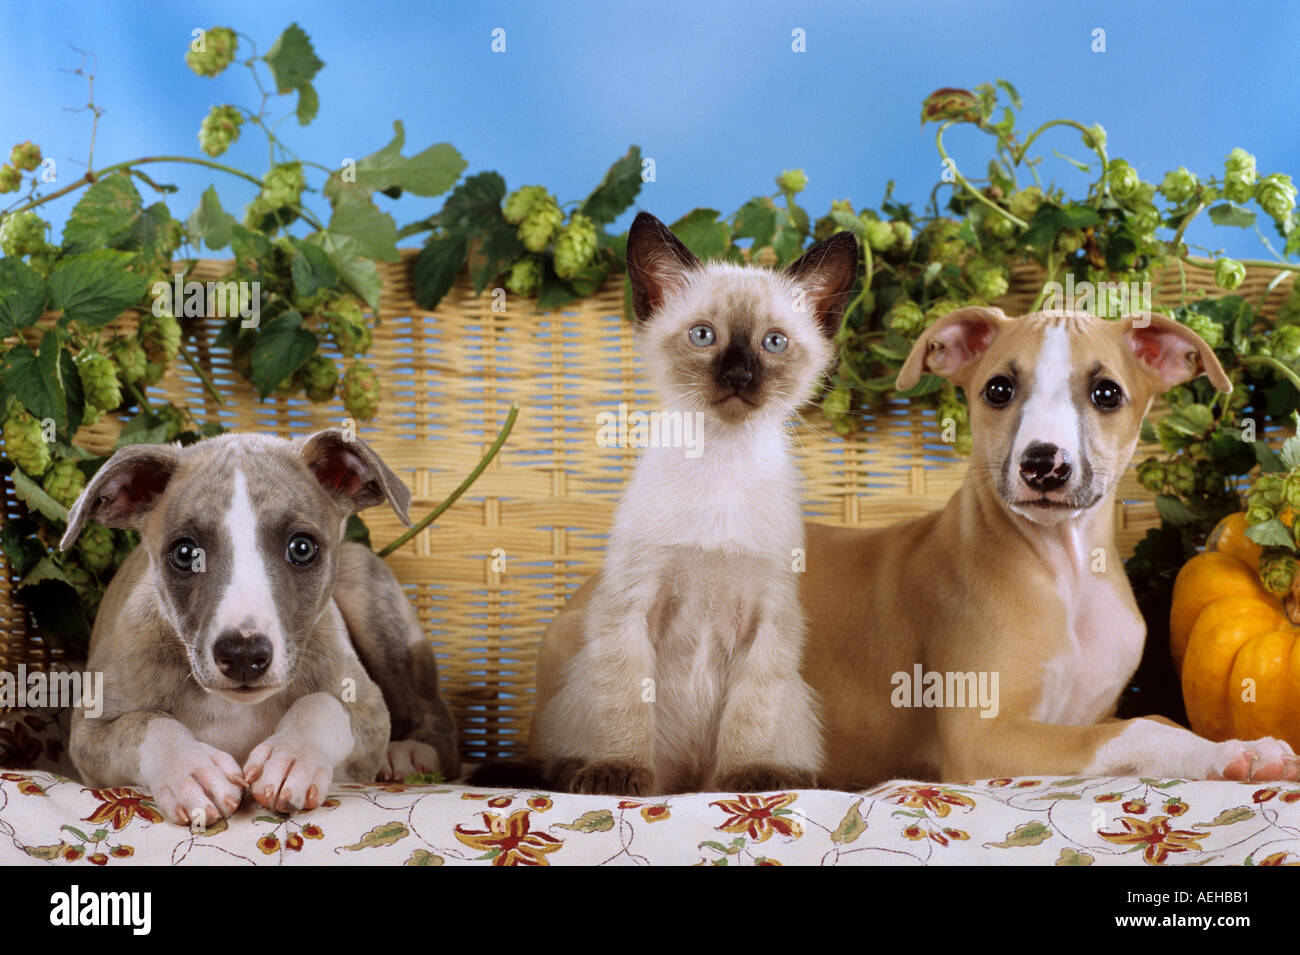 animal-friendship: young Siamese cat sitting between two Whippet dogs - puppies Stock Photo